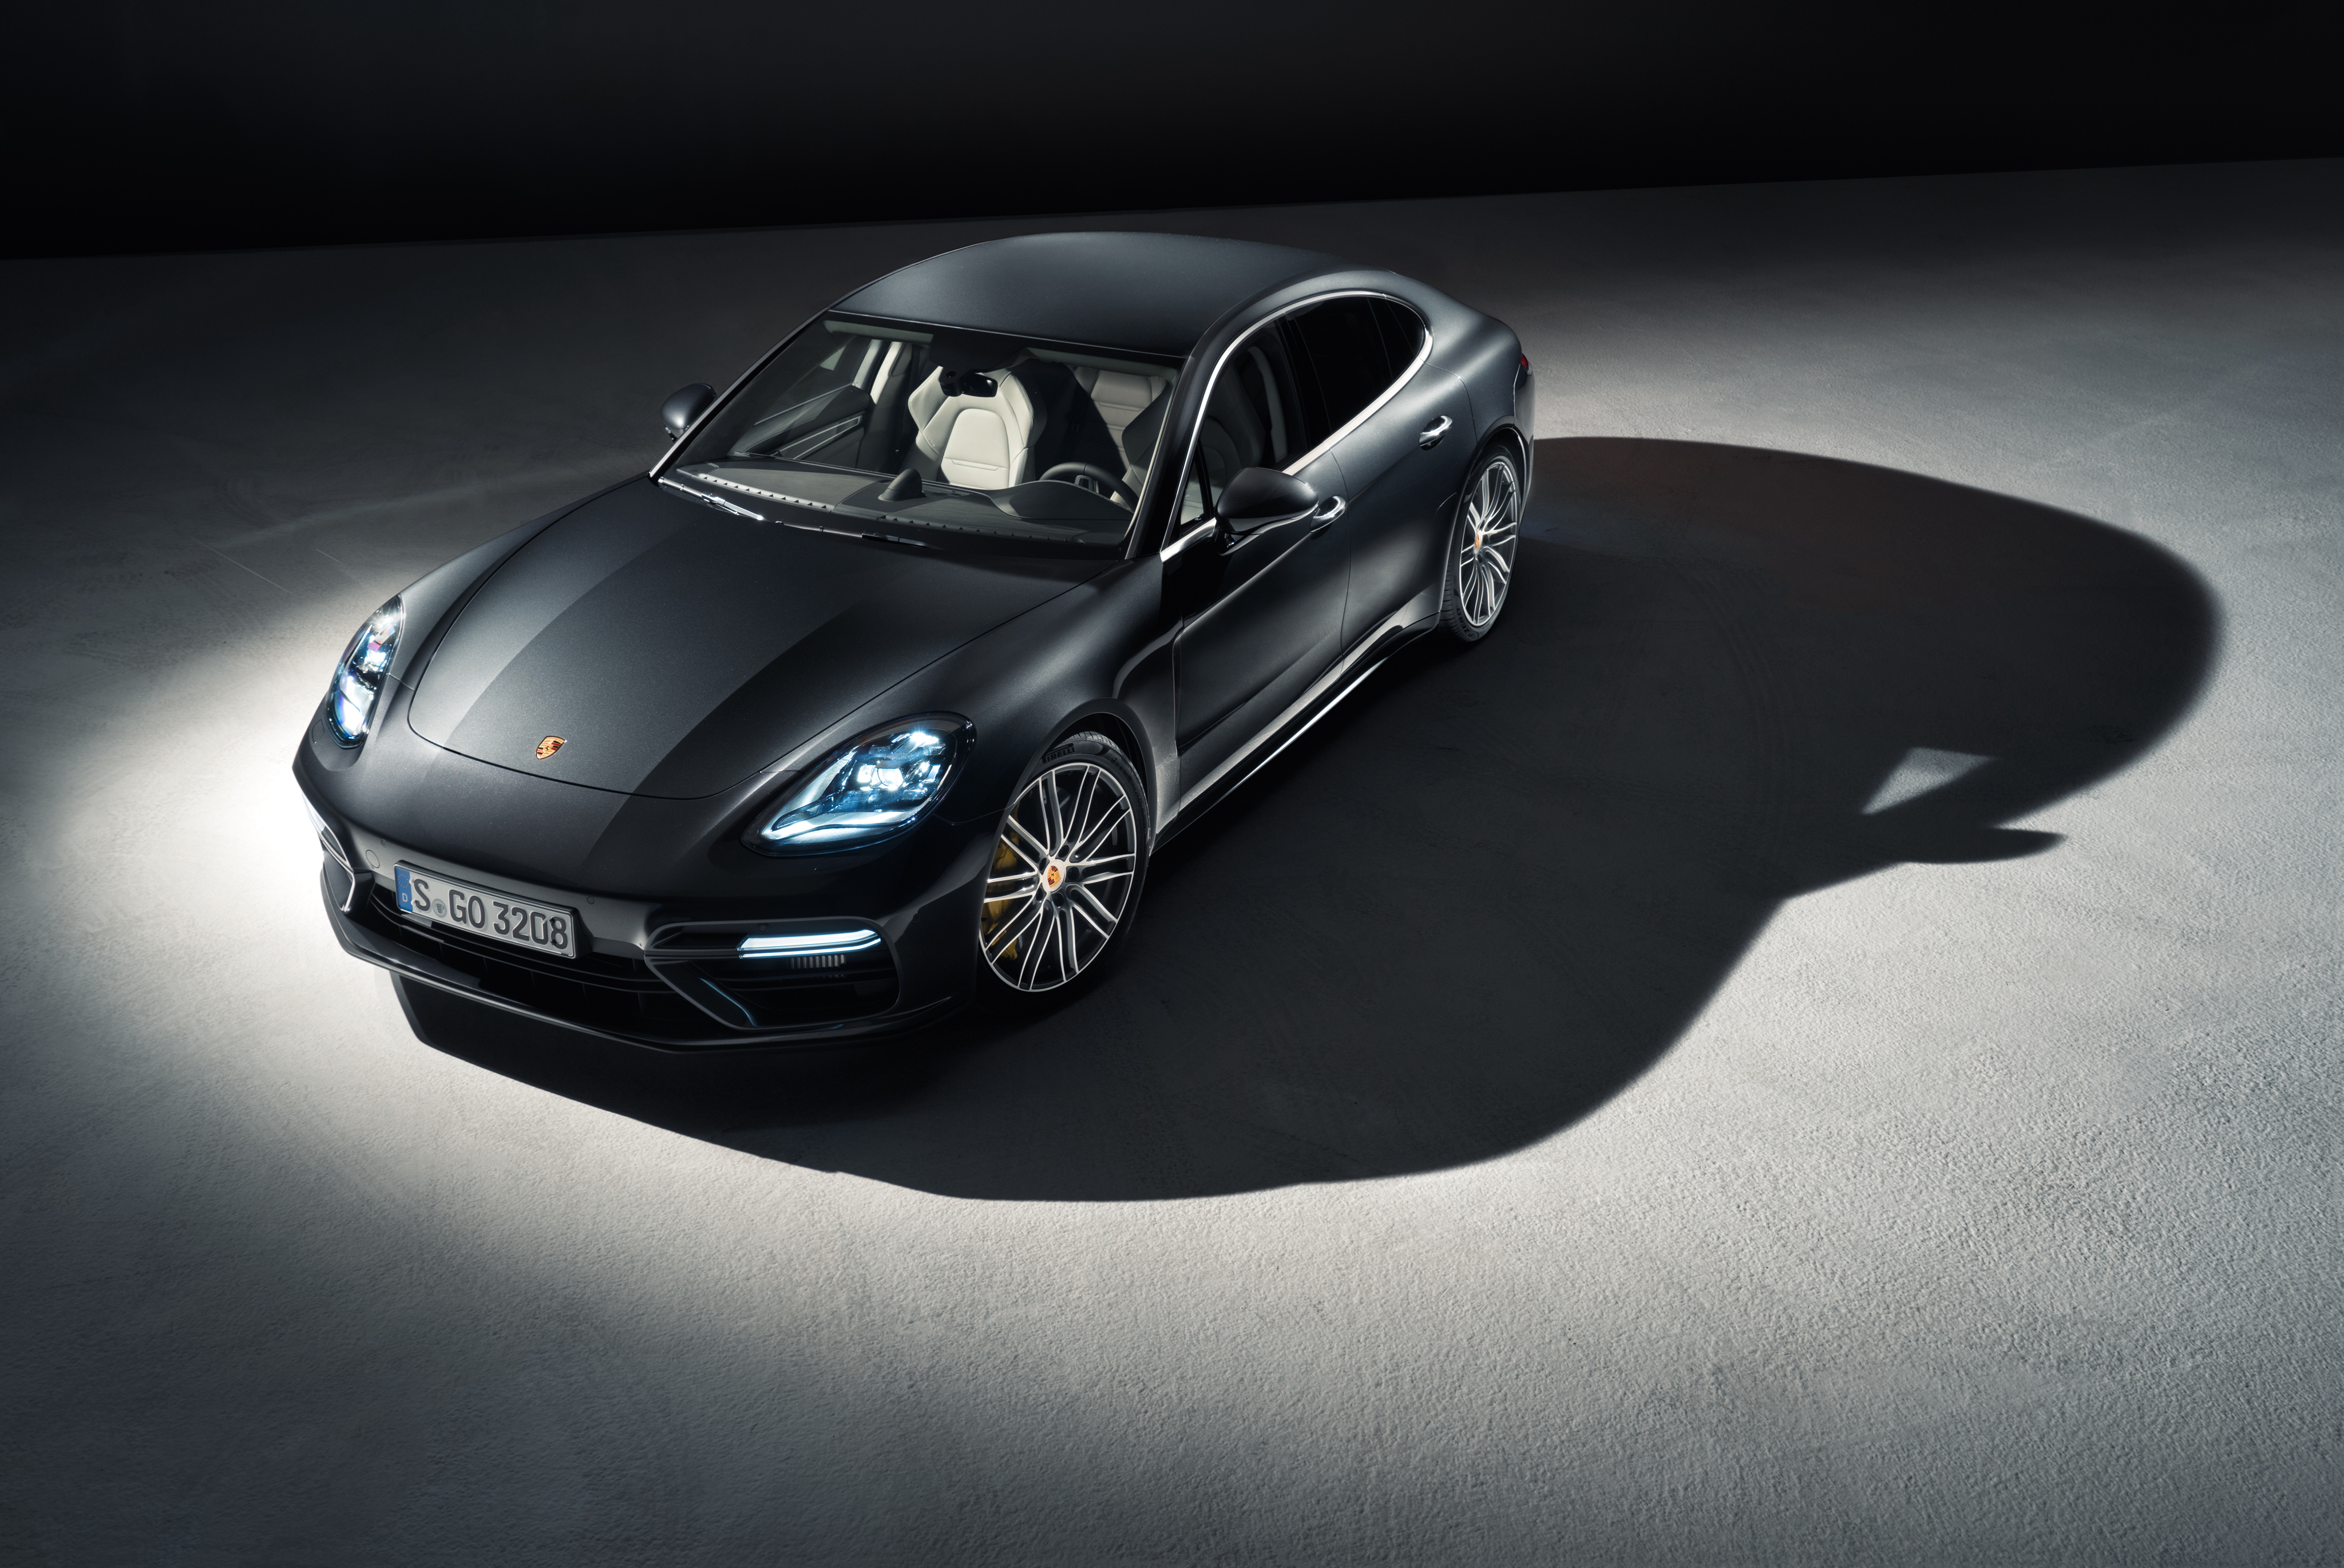 112900 Screensavers and Wallpapers Front View for phone. Download Panamera, Porsche, Cars, Front View, Shadow pictures for free